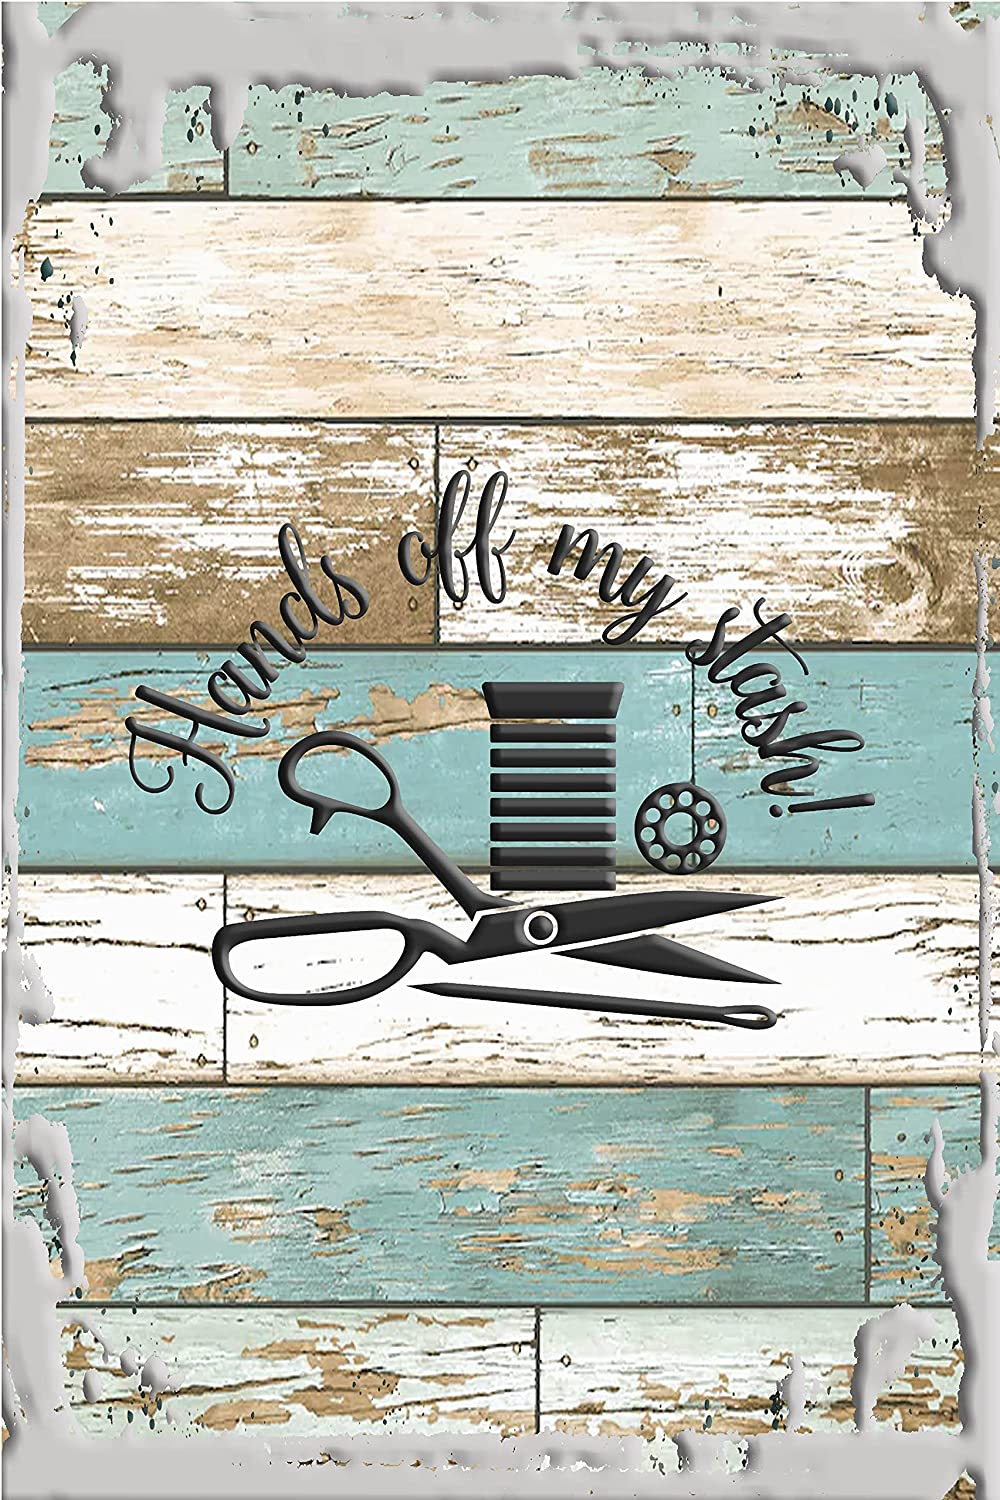 Hands off my Credence New life stash scissors needle sewing and hobby thread funny